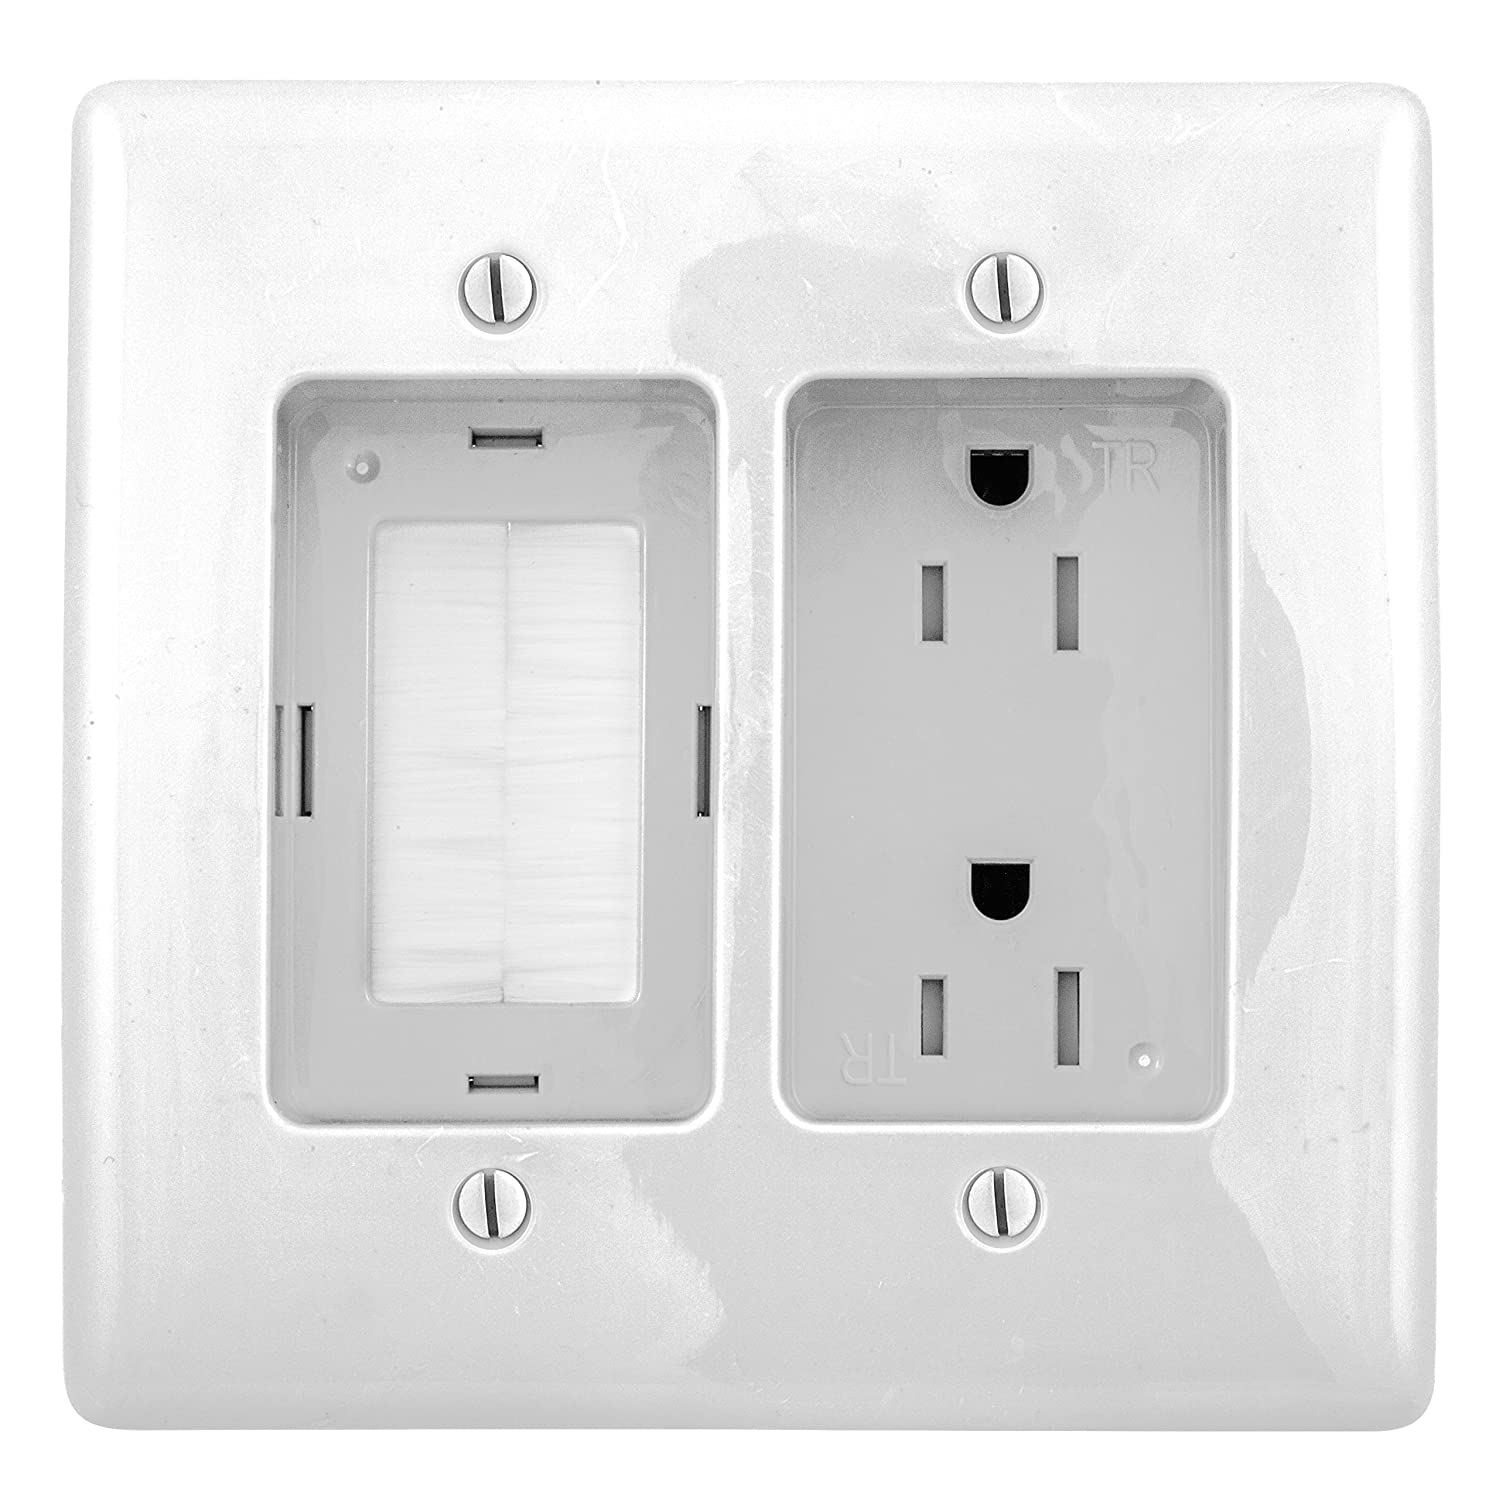 Bryant Electric RR1512W 2-Gang Recessed TV Connection Outlet Plate ...